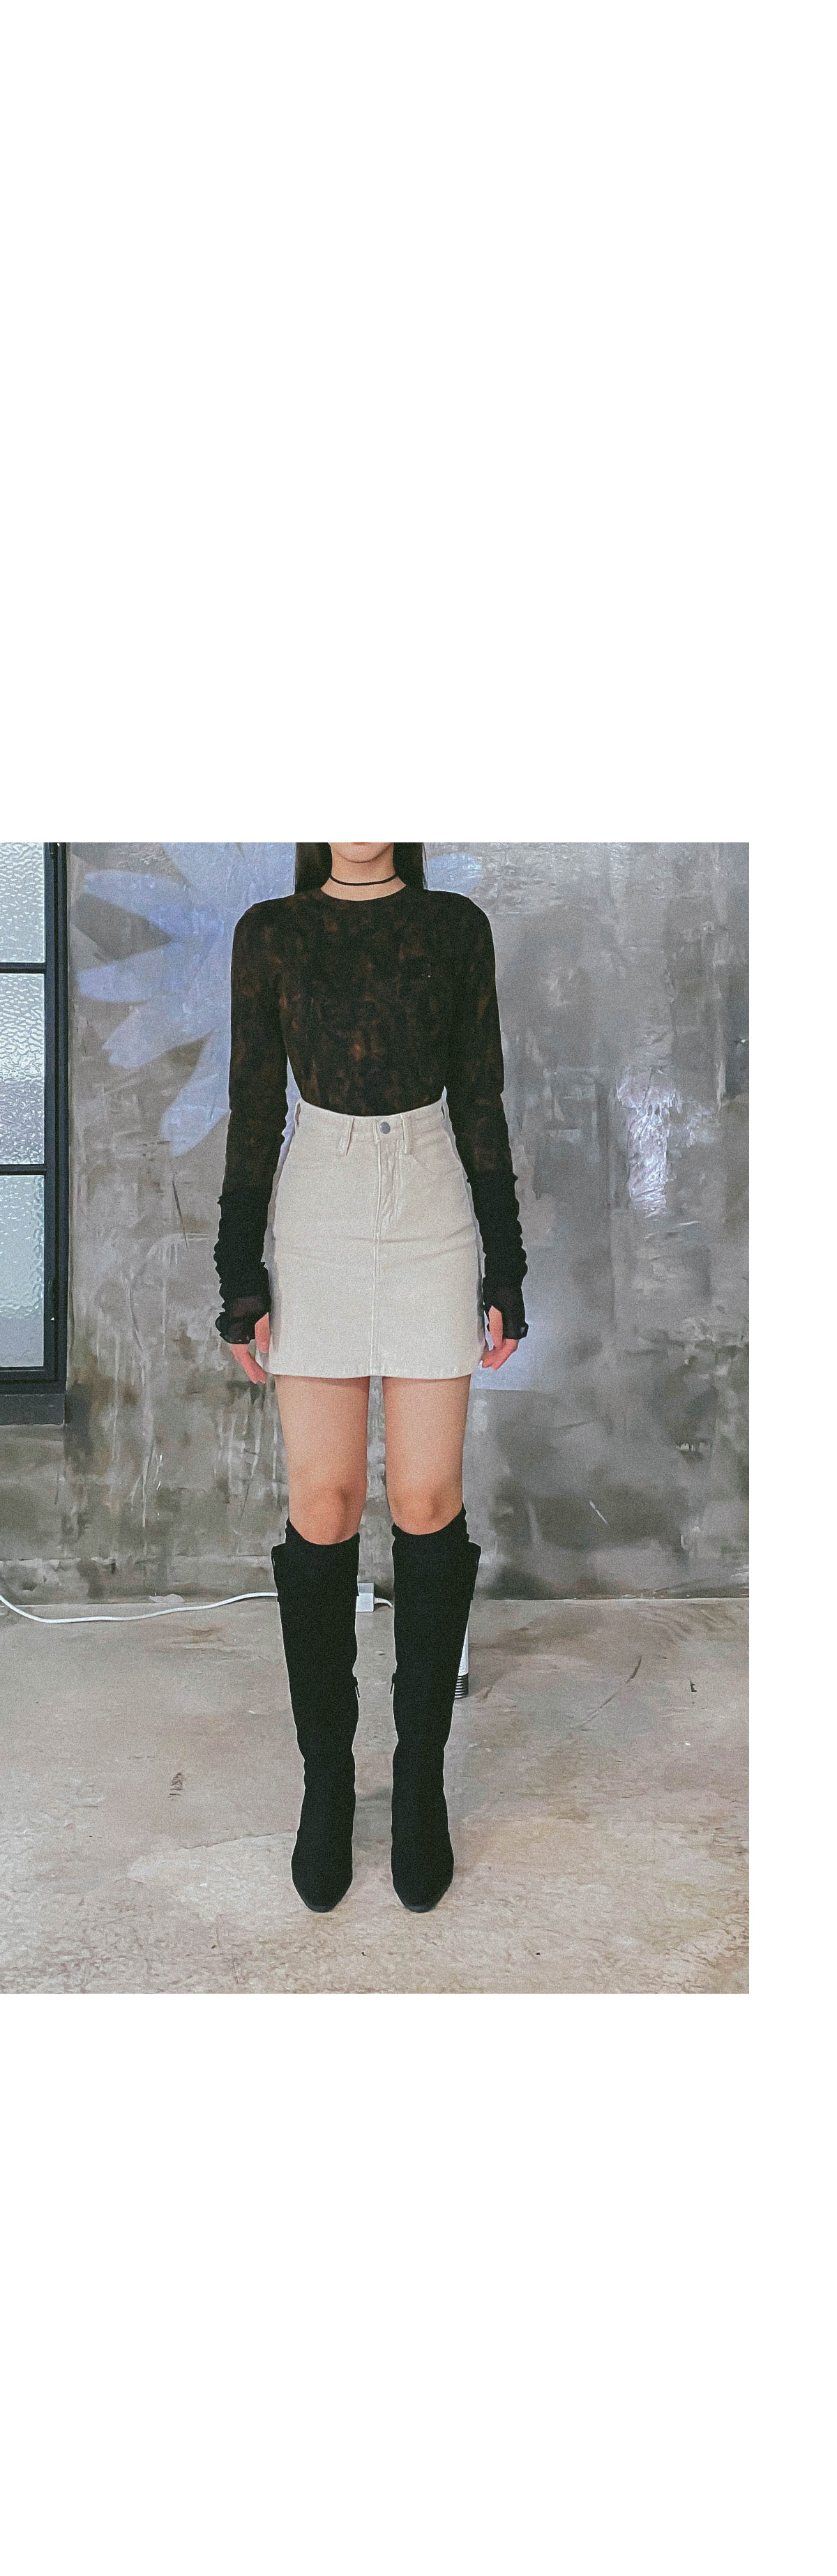 Corduroy derrin mini skirt